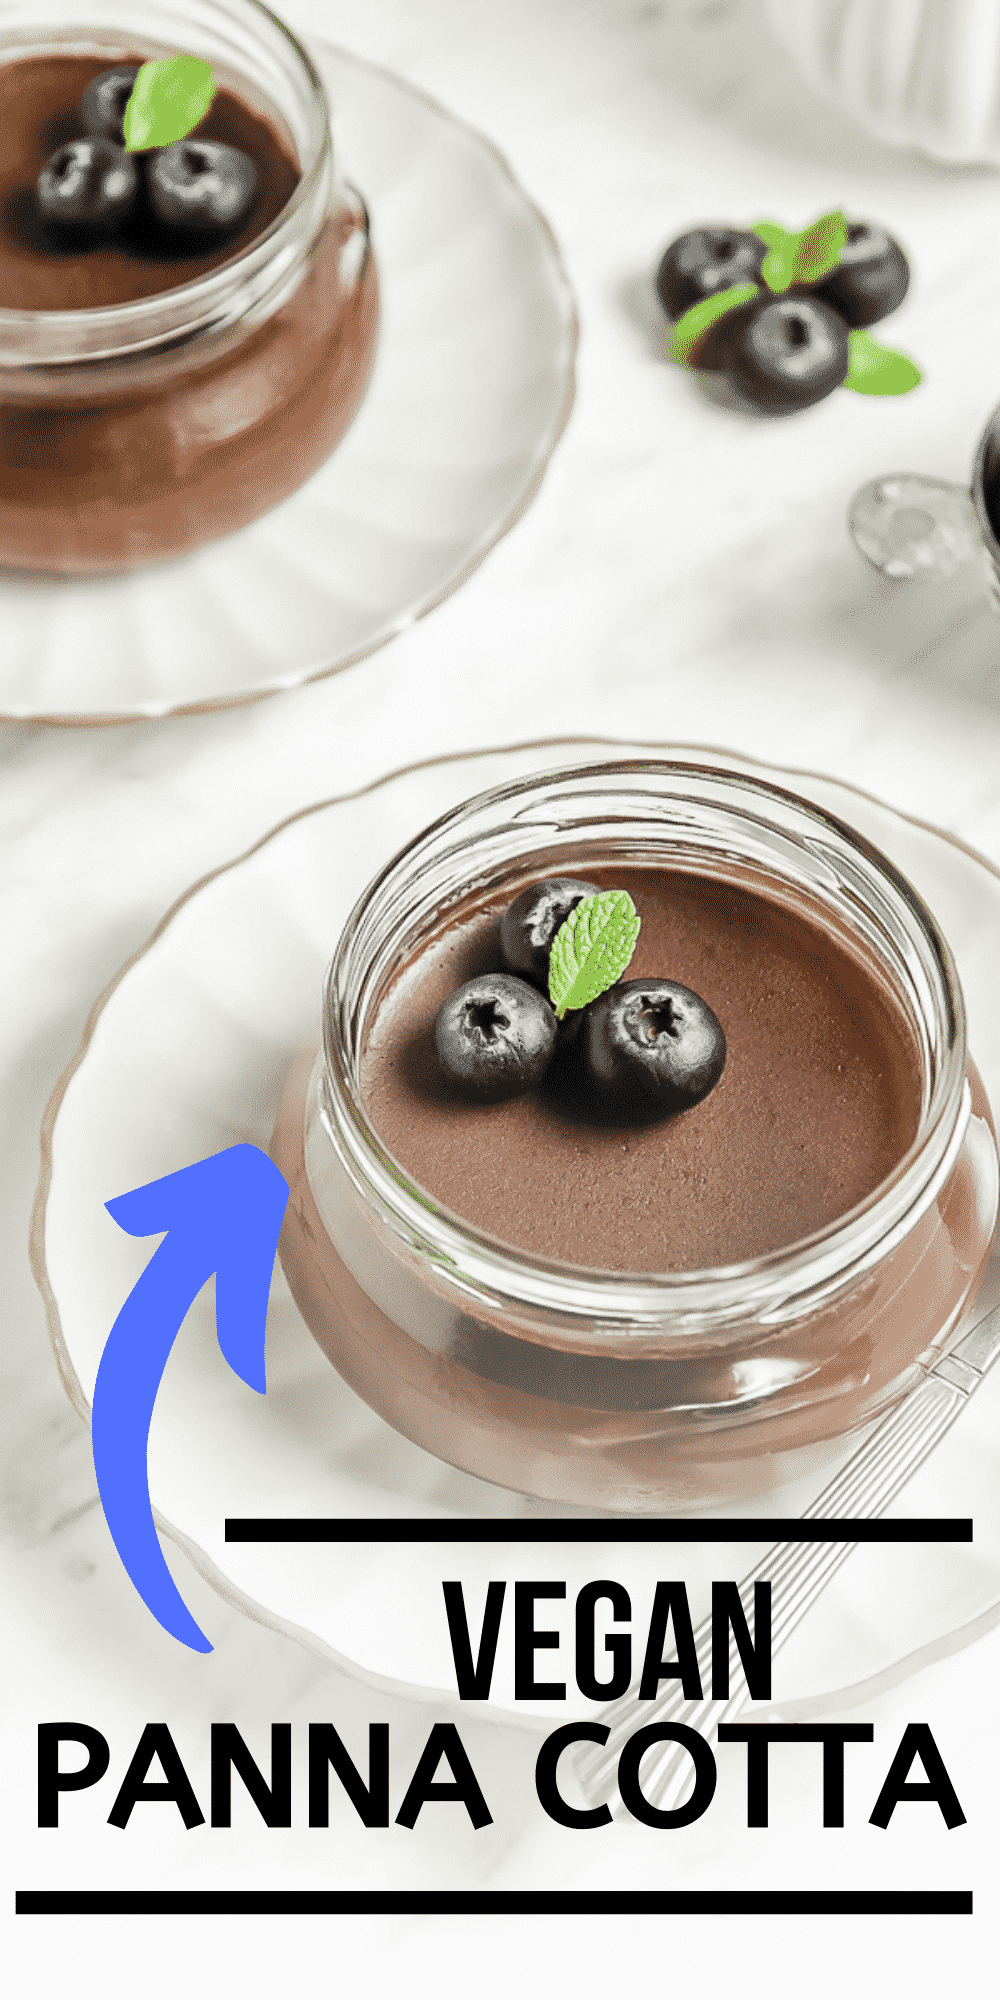 Vegan Panna Cotta is so decadent and creamy with just 6 ingredients and no gelatin! This amazing chocolate dessert comes together in just a few minutes to impress at your next party. #vegandessert #glutenfreedessert